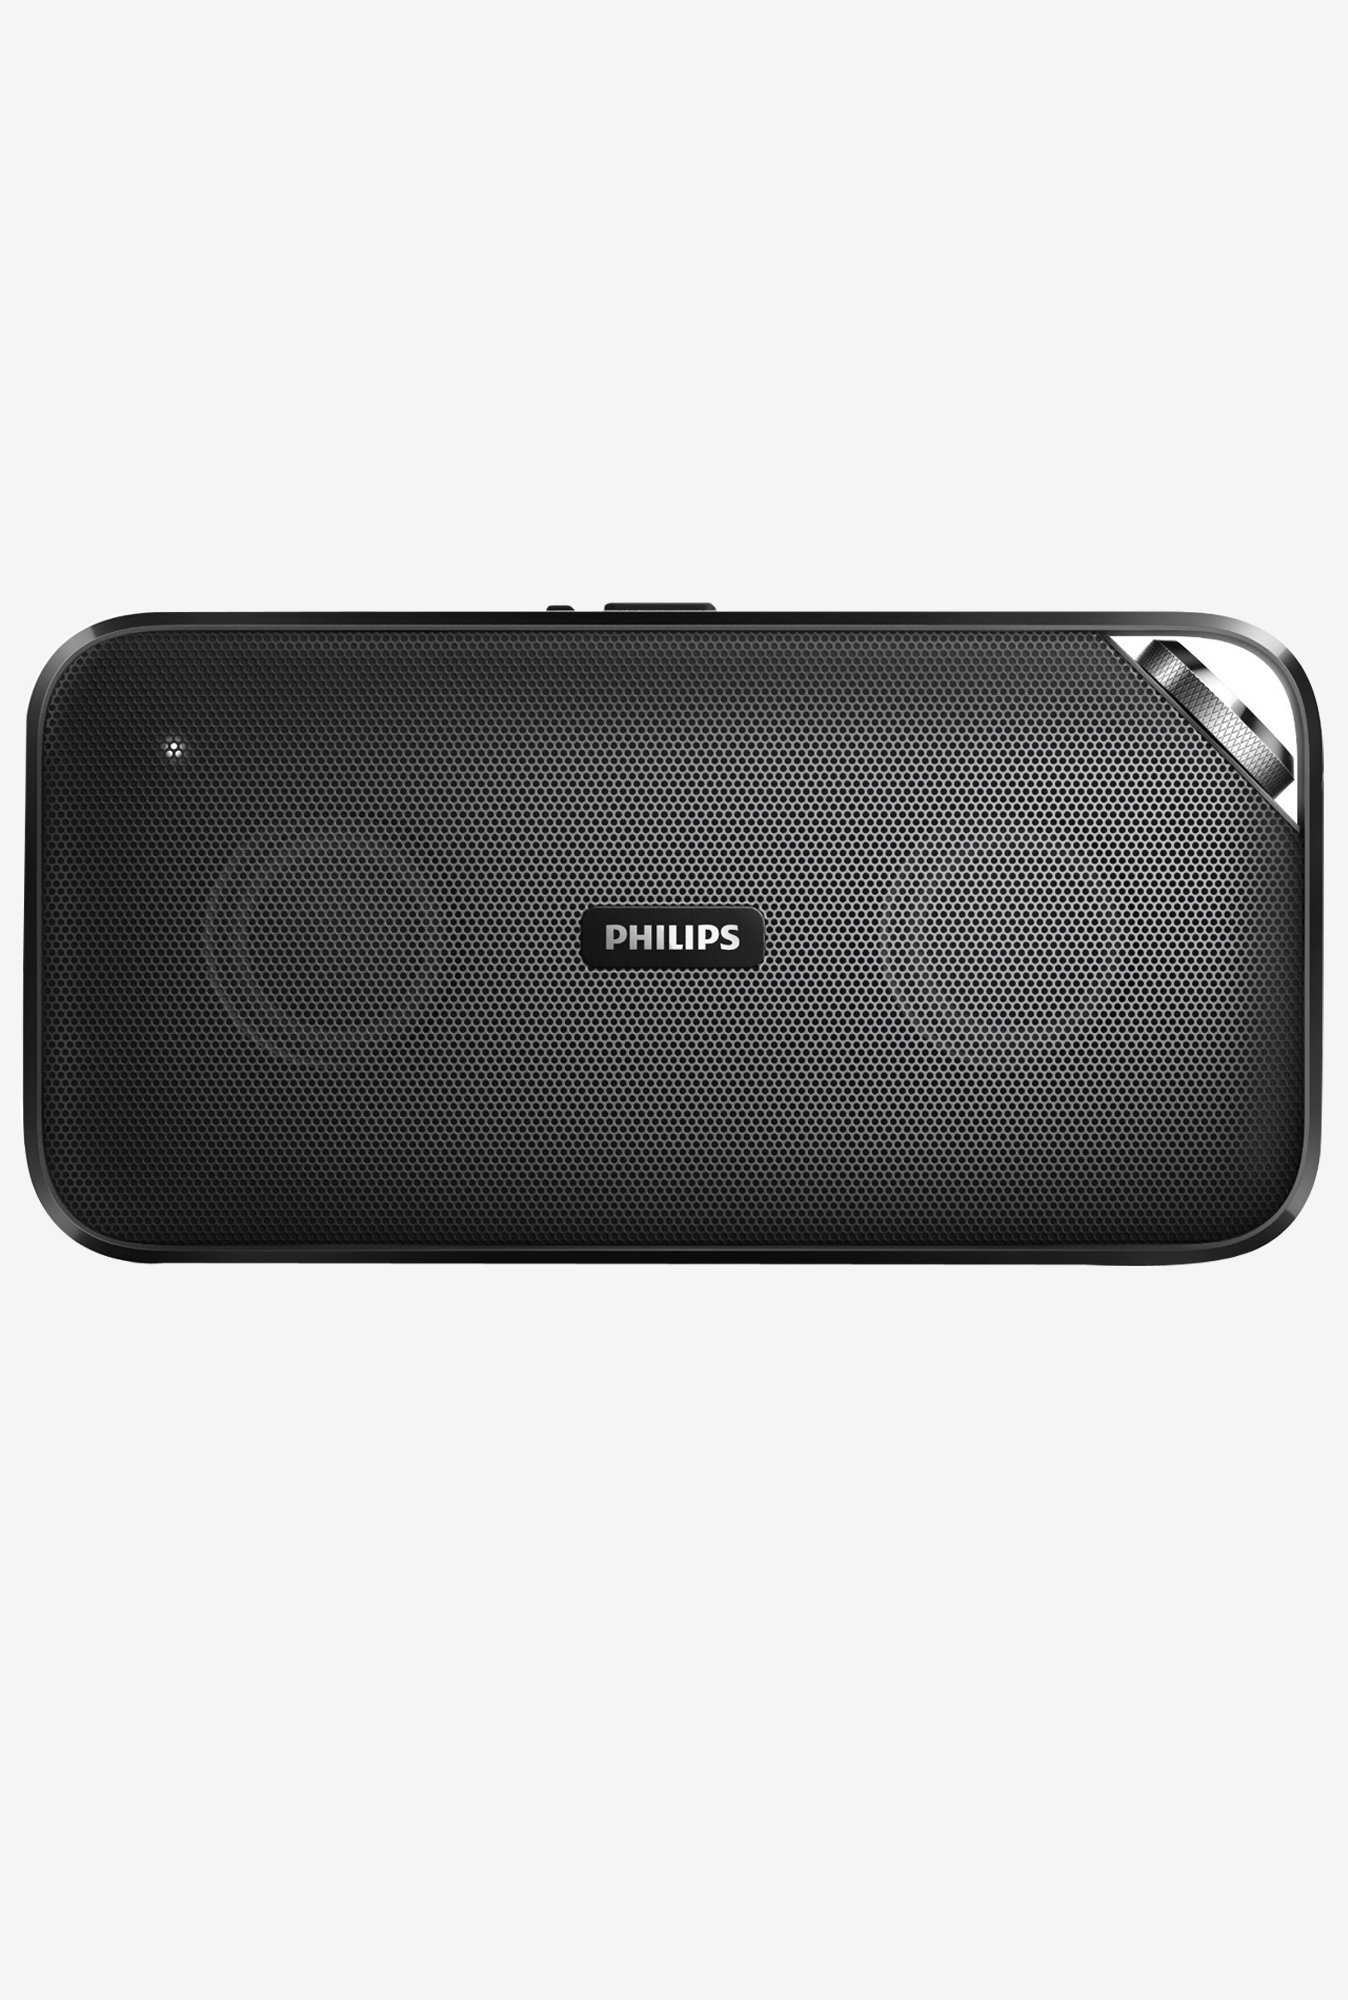 Philips BT3500B/37 Portable Bluetooth Speakers (Black)